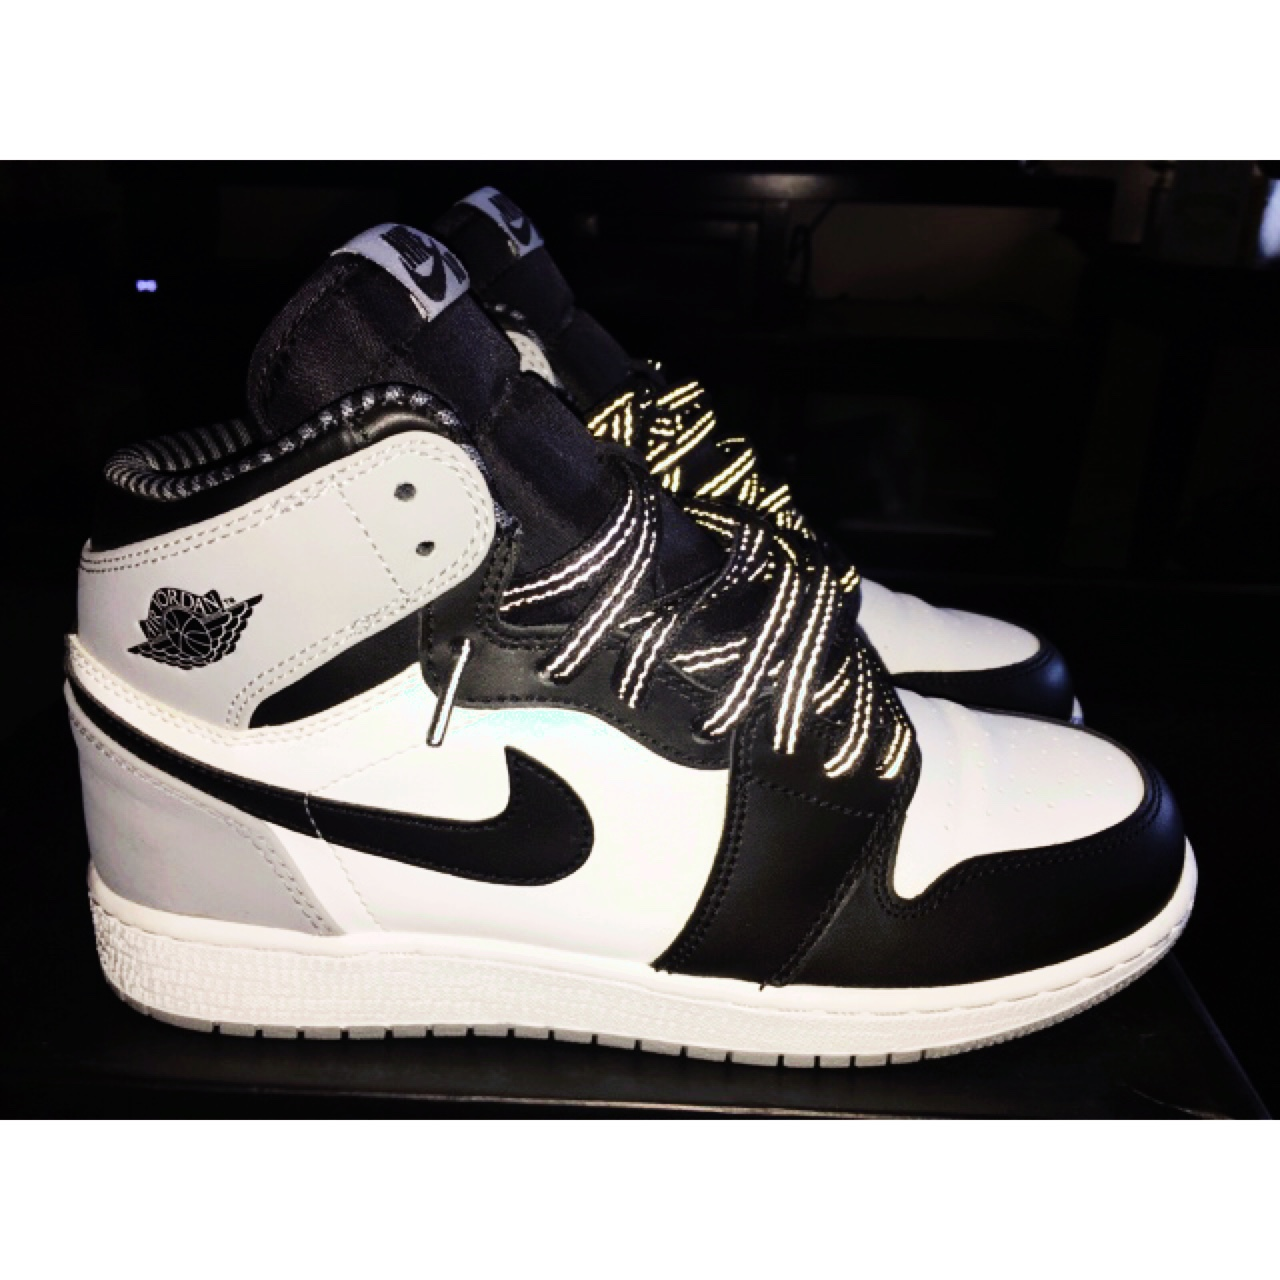 official photos 488fe 0dd11 Jordan retro 1 Barons. Condition: 9/10. Only worn once. - Depop